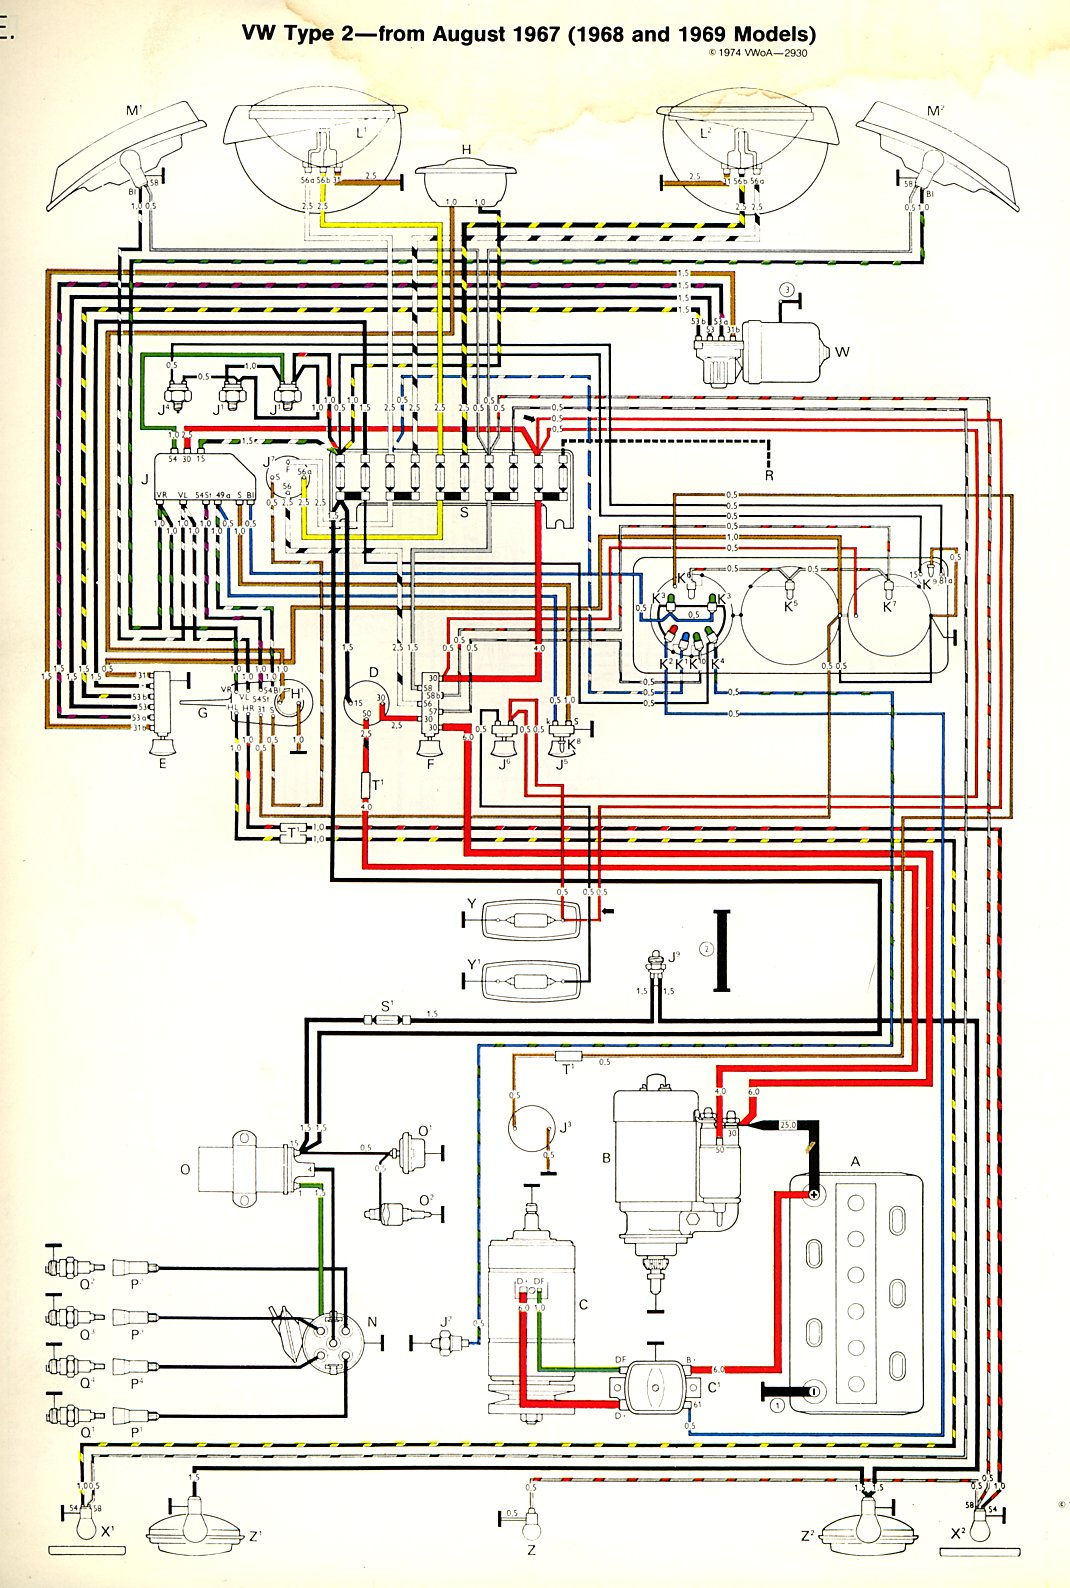 baybus_6869a vw bus wiring diagram wiring diagrams schematics